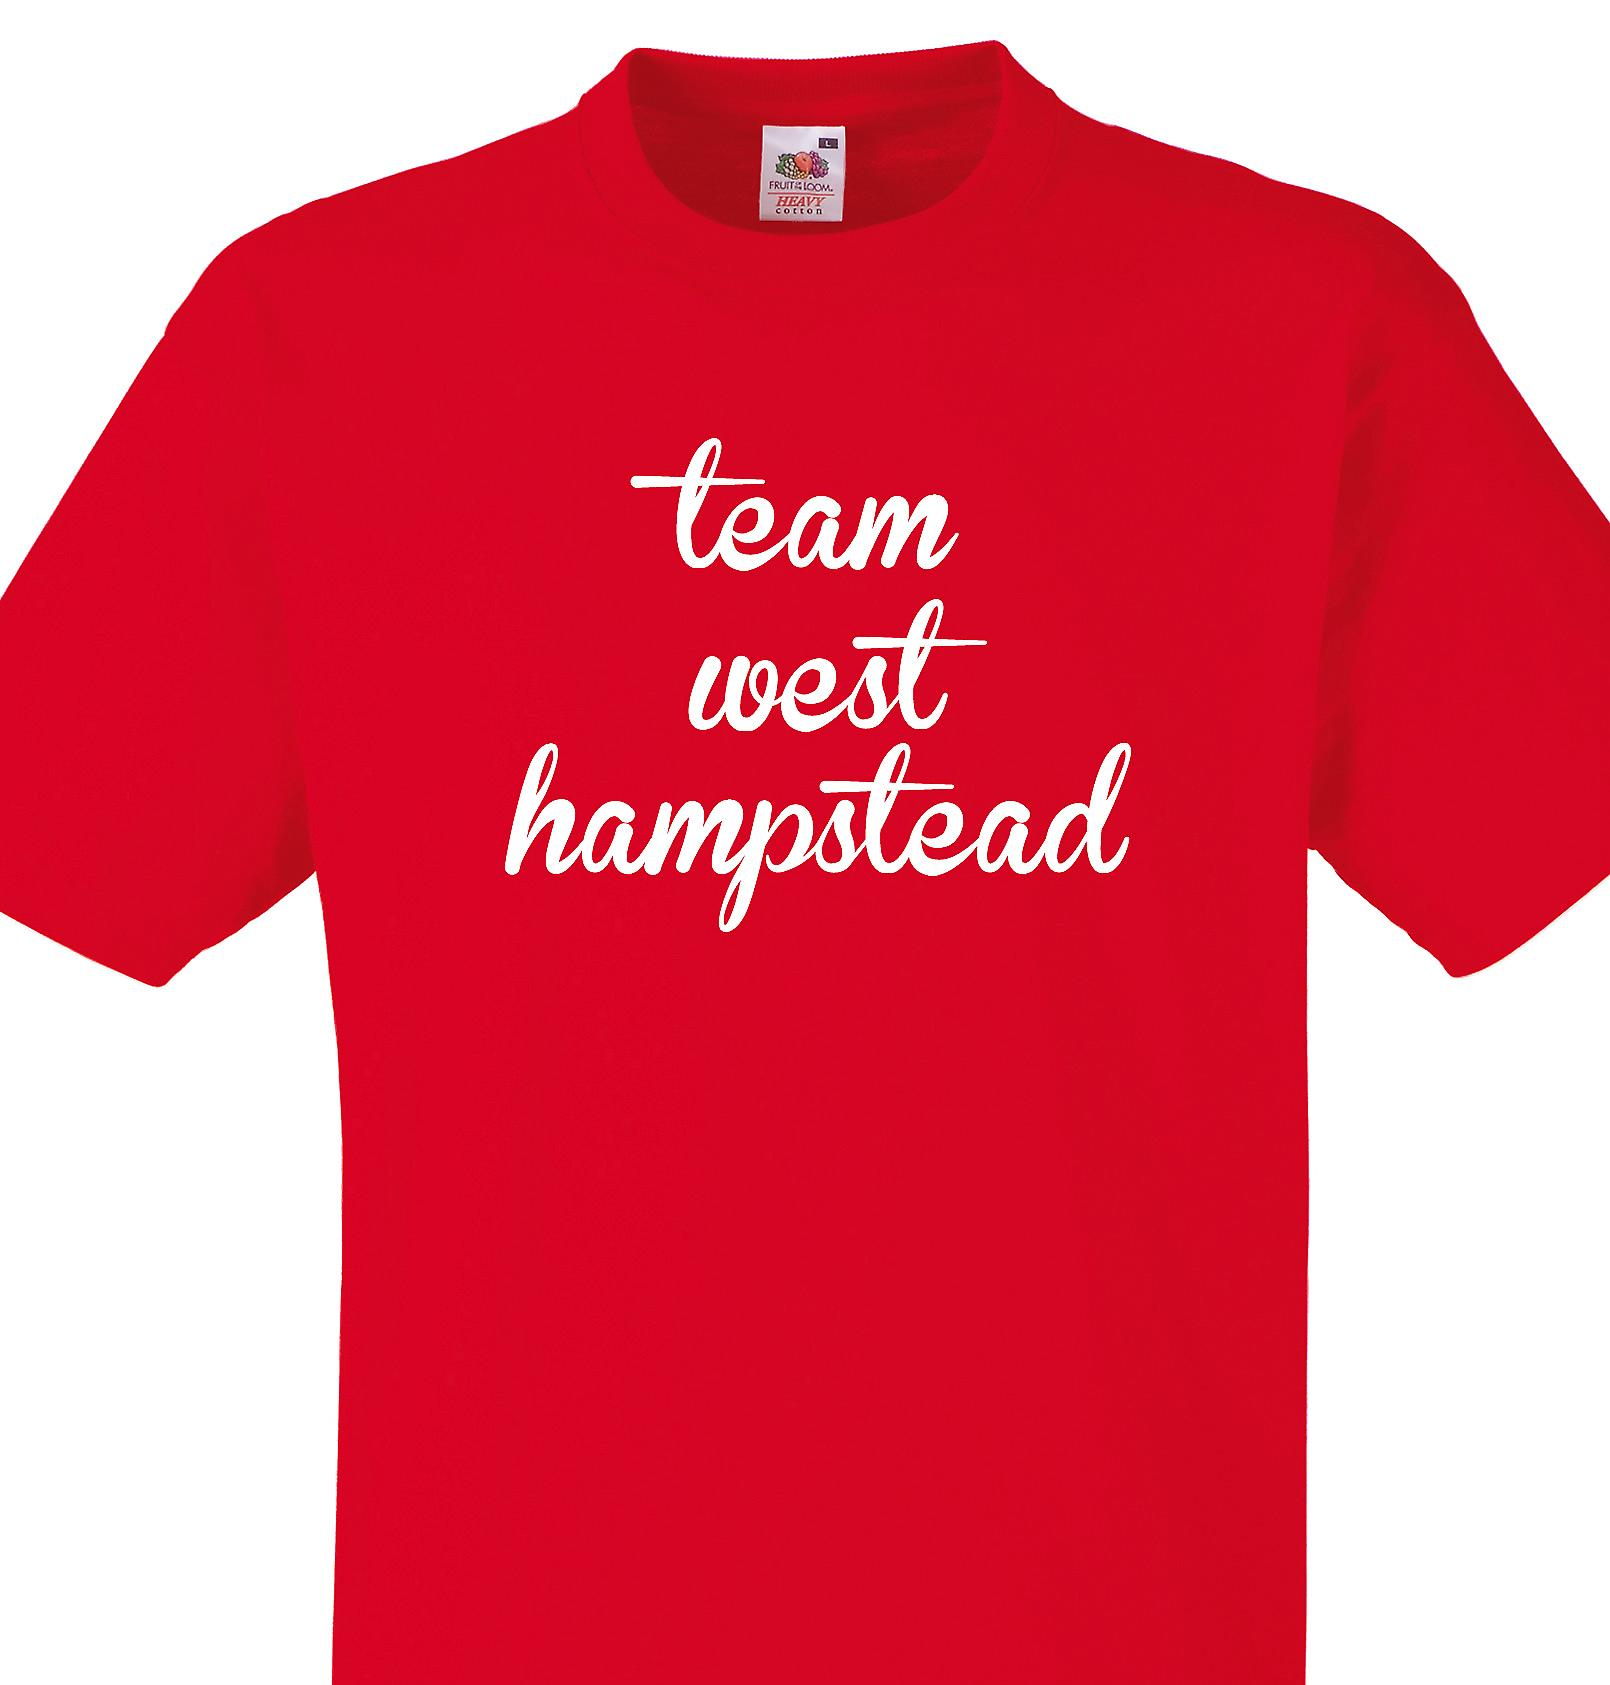 Team West hampstead Red T shirt